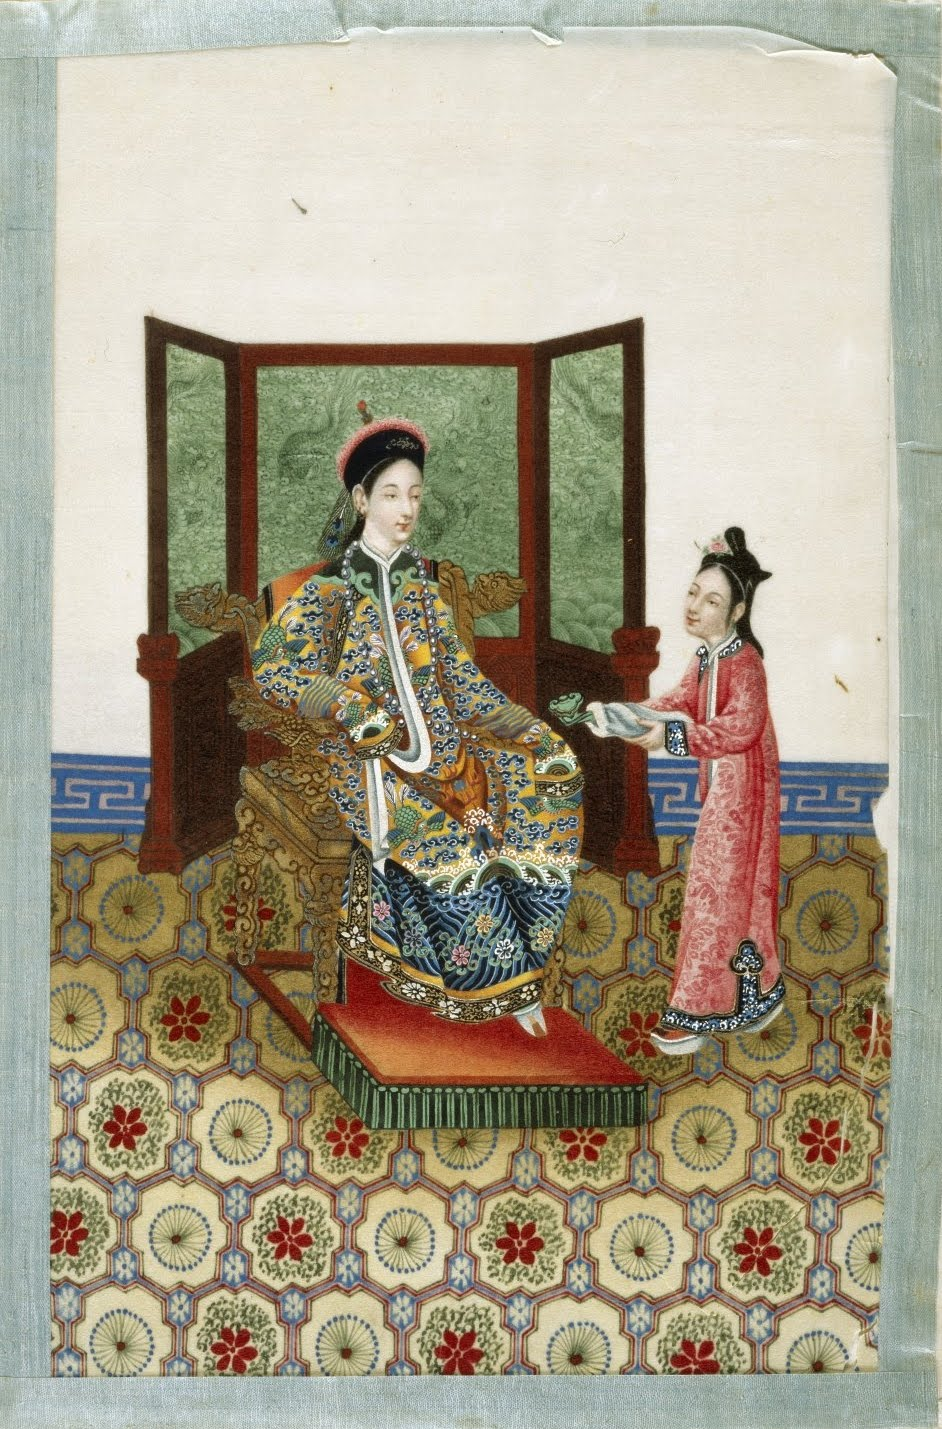 colourful Chinese royal court scene - seated nobleman and attendant